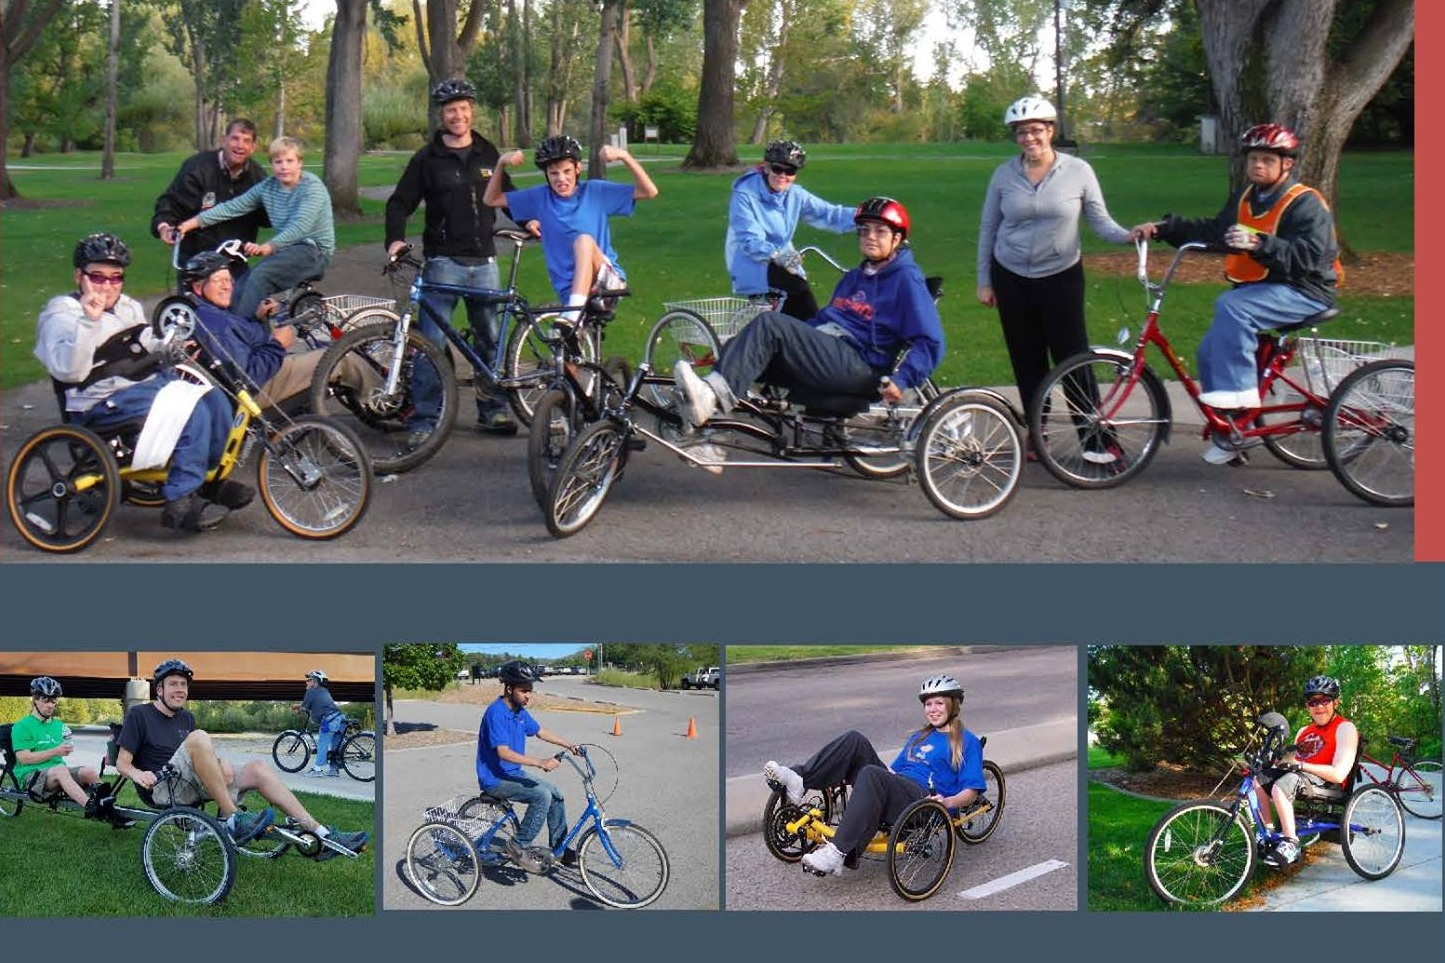 Adaptive Bike Fair - Saturday, May 18 from 10 AM - 2 PM at Fort Boise. Try out a variety of adaptive cycles! This is a great time to learn about adaptive cycles and discover what type works for you. All ages and ability levels are welcome. See the Facebook event for more information.